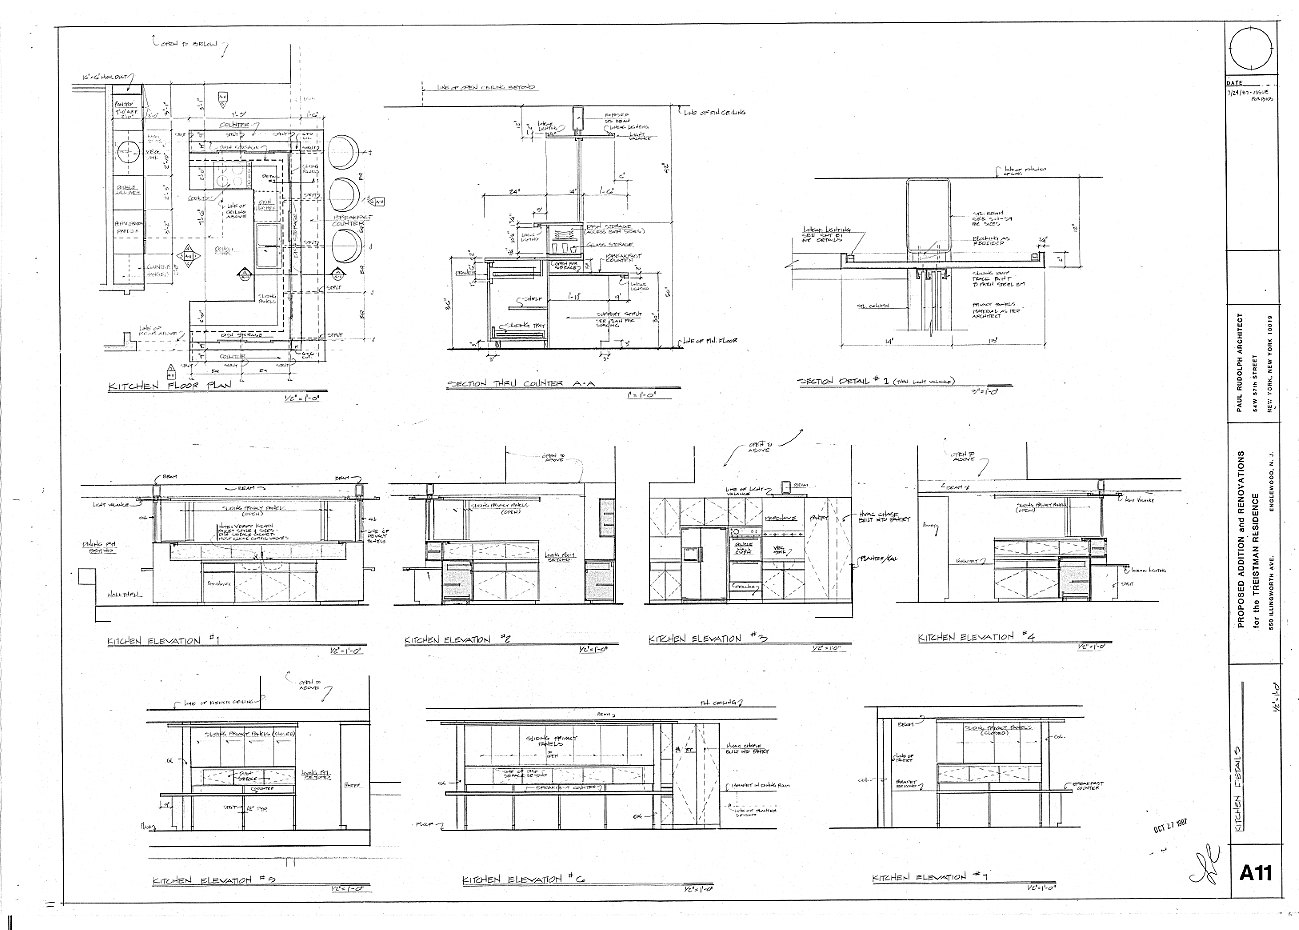 Residence for Mr. and Mrs. Treistman, Englewood, New Jersey.  Interior Elevations, Sheet A11.